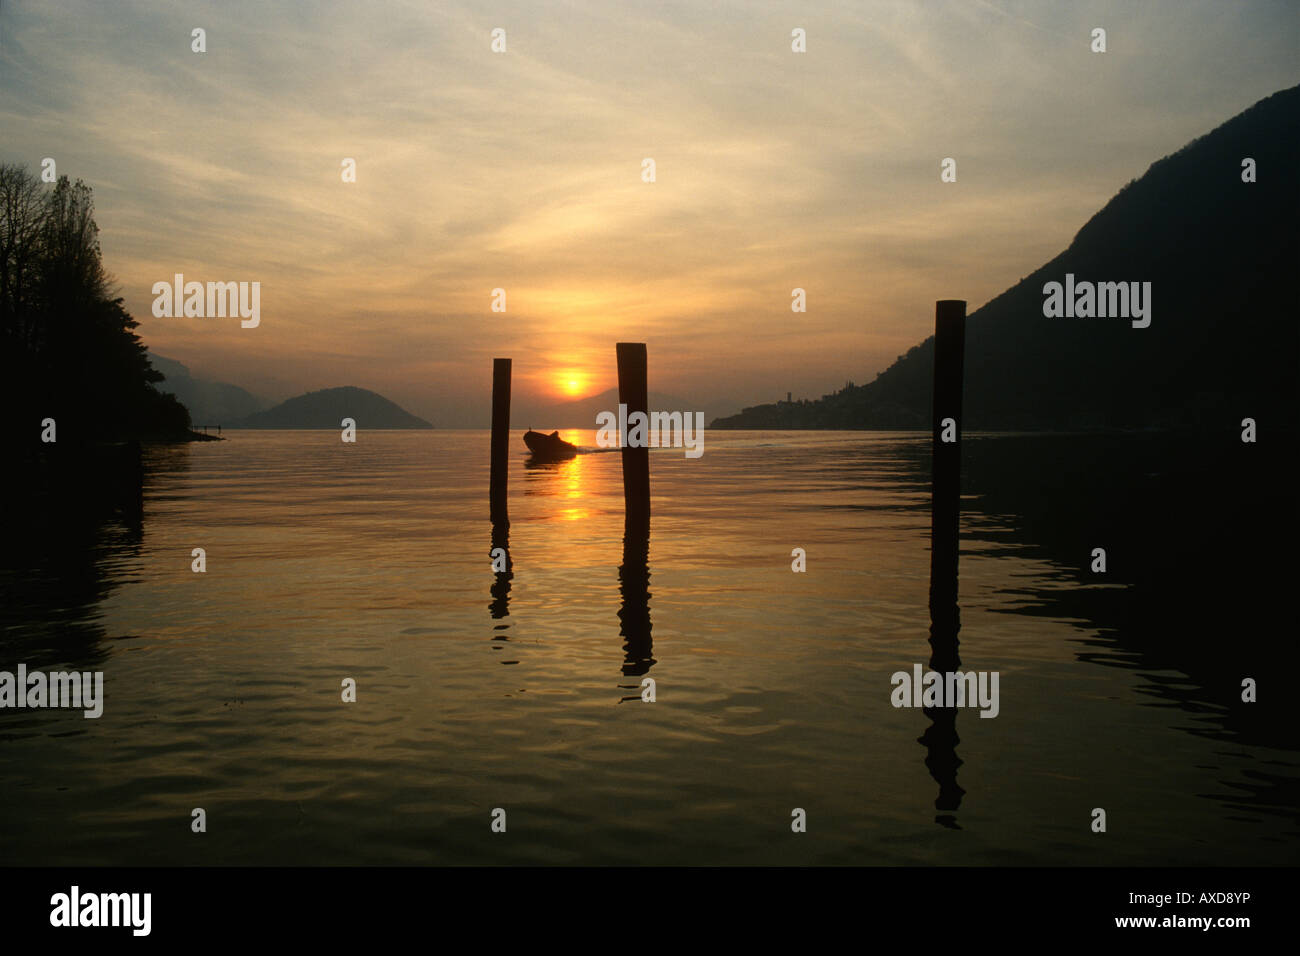 Lago d'Iseo Lombardy Italy View of Lake Iseo and Monte Isola Island - Stock Image